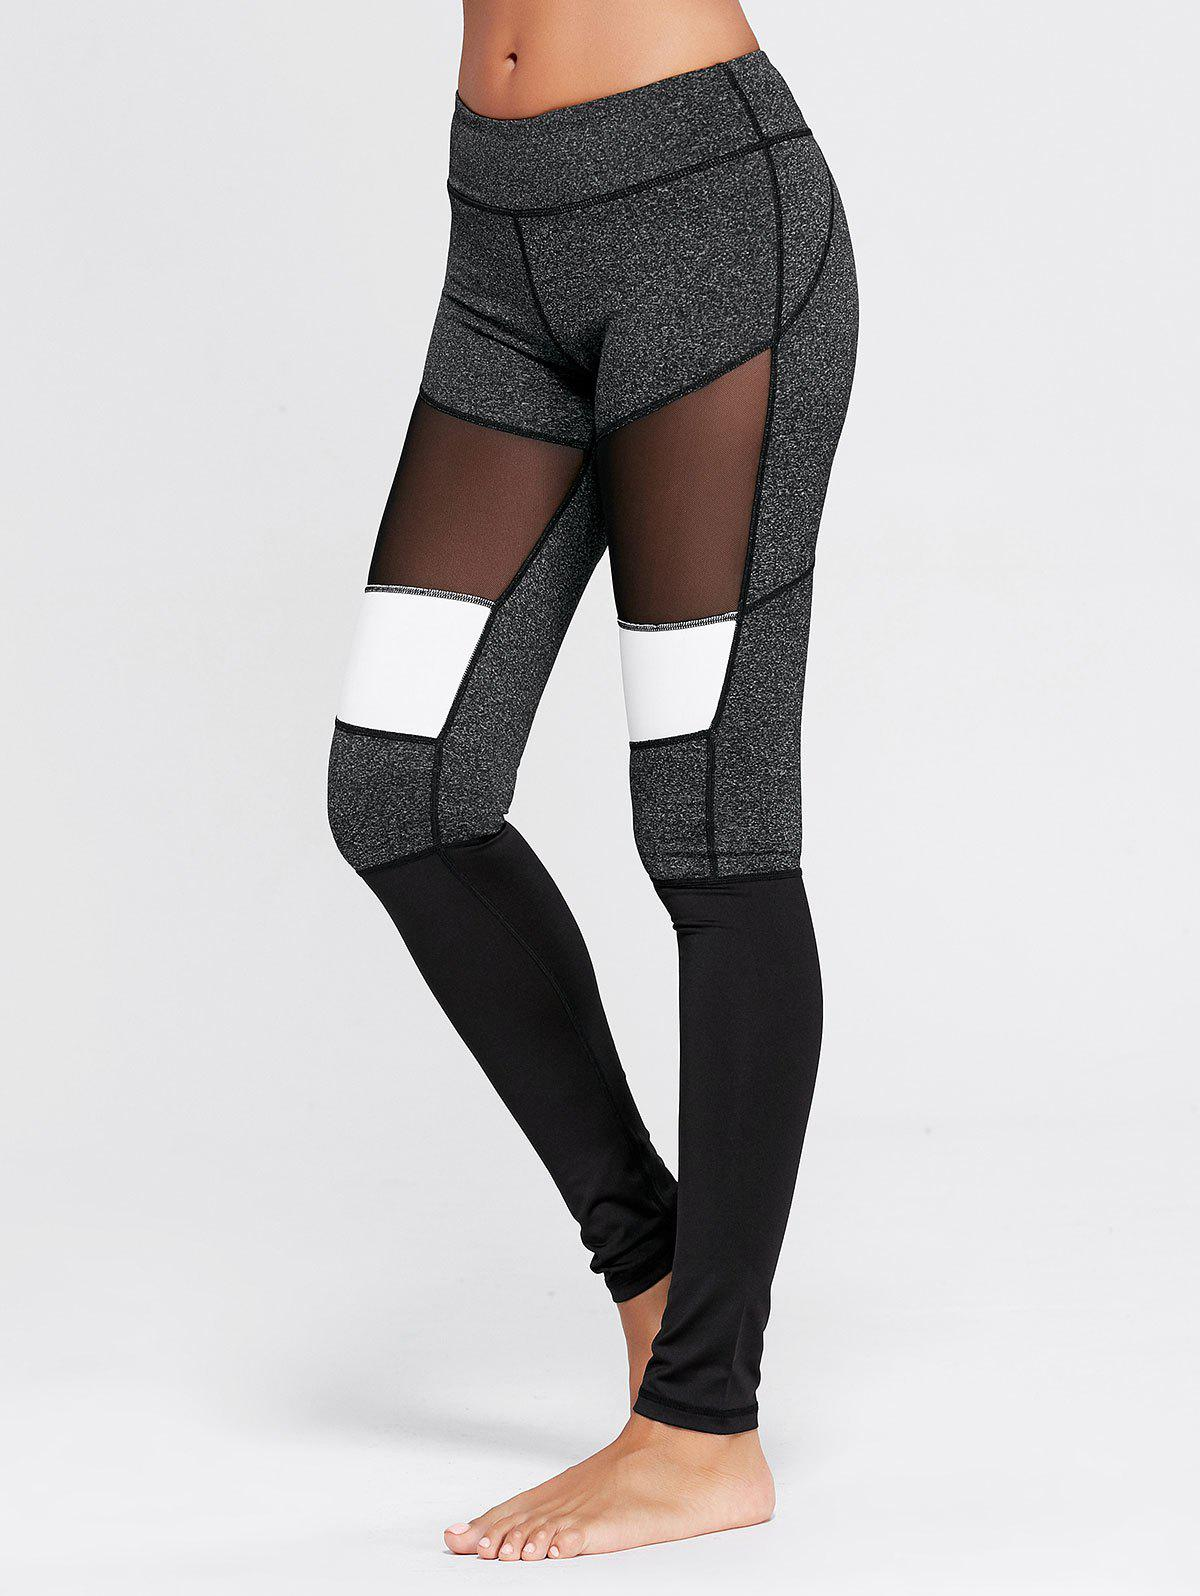 Two Tone Workout Leggings with Mesh - GRAY M